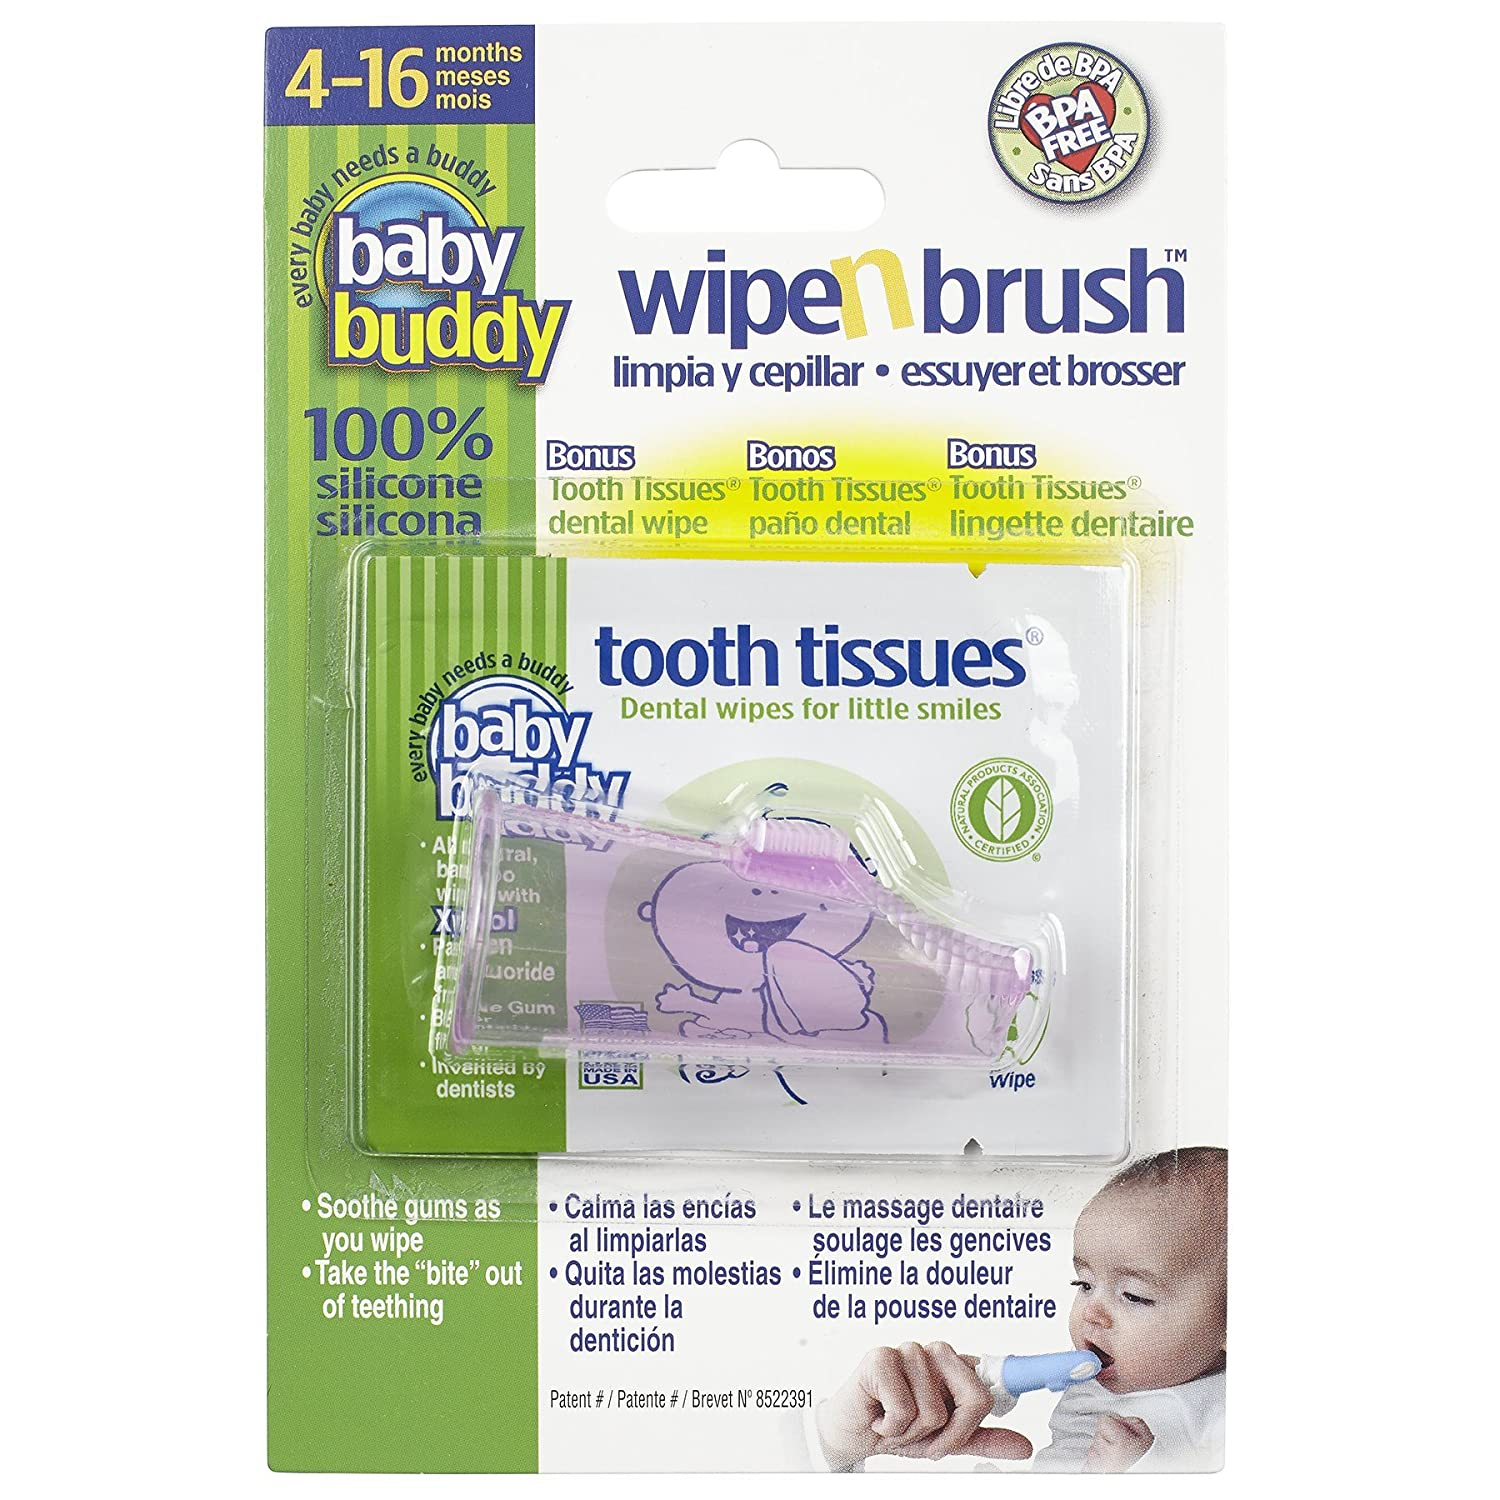 Baby Buddy Wipe N Brush Silicone Toothbrush and Dental Wipe Assistant, Pink 00585P